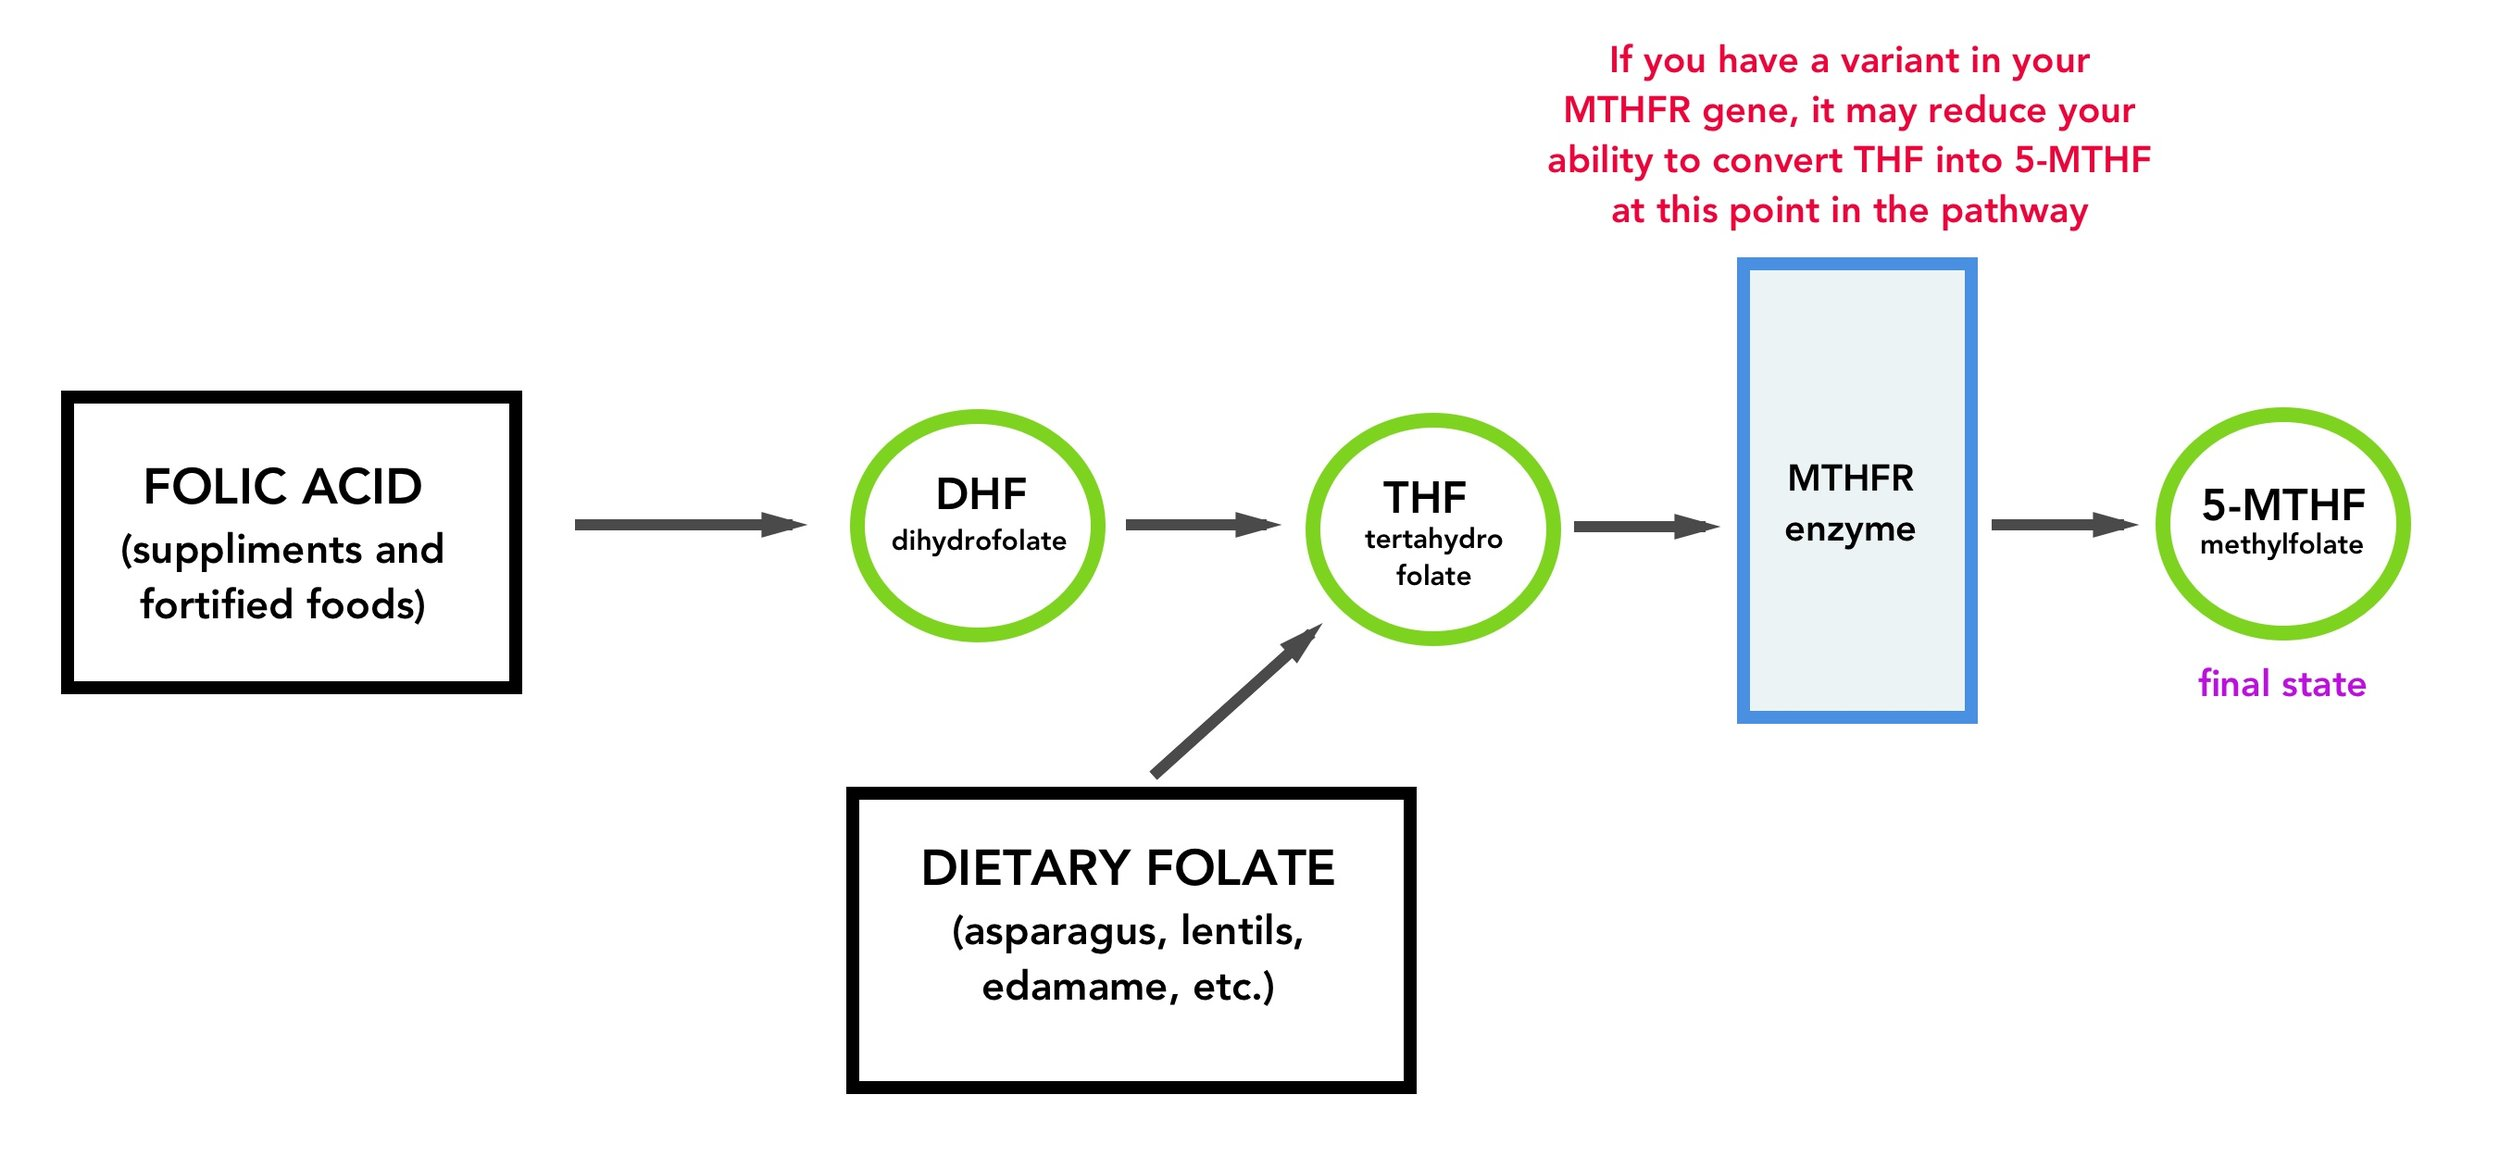 MTHFR mutation in the folate pathway